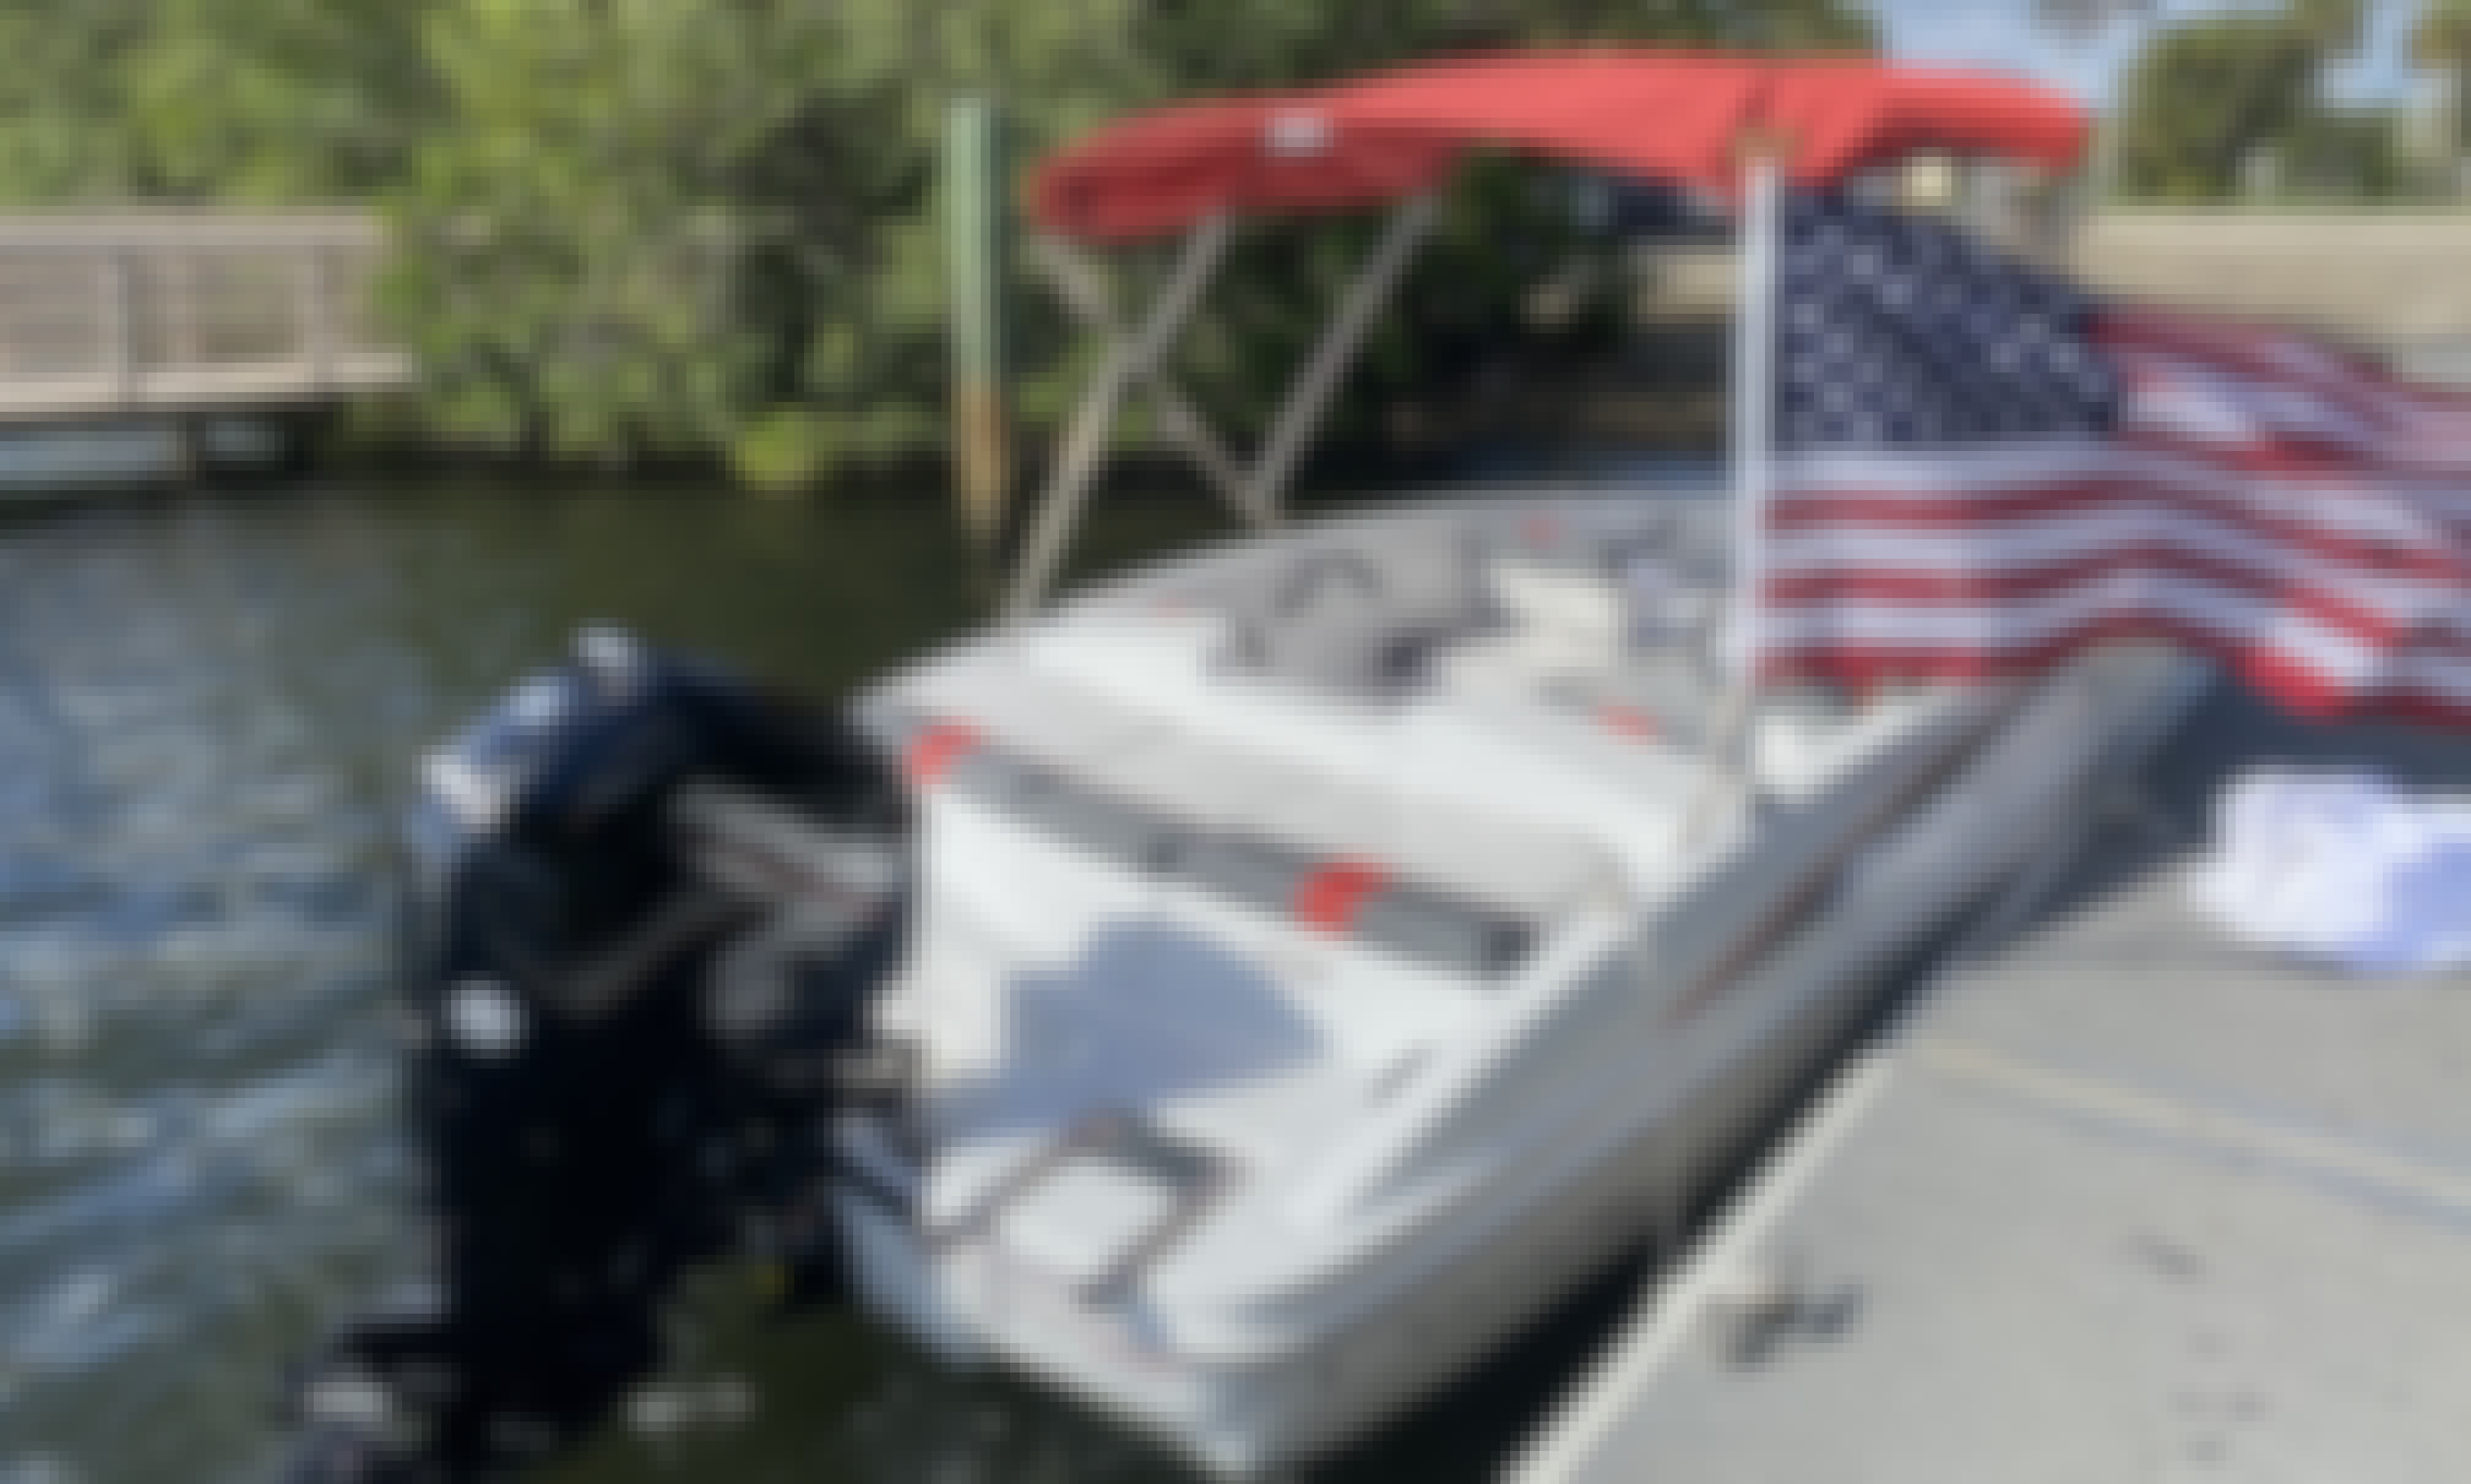 BRAND NEW 2021 Tahoe T16 boat, perfect for FAMILY, FUEL INCLUDED